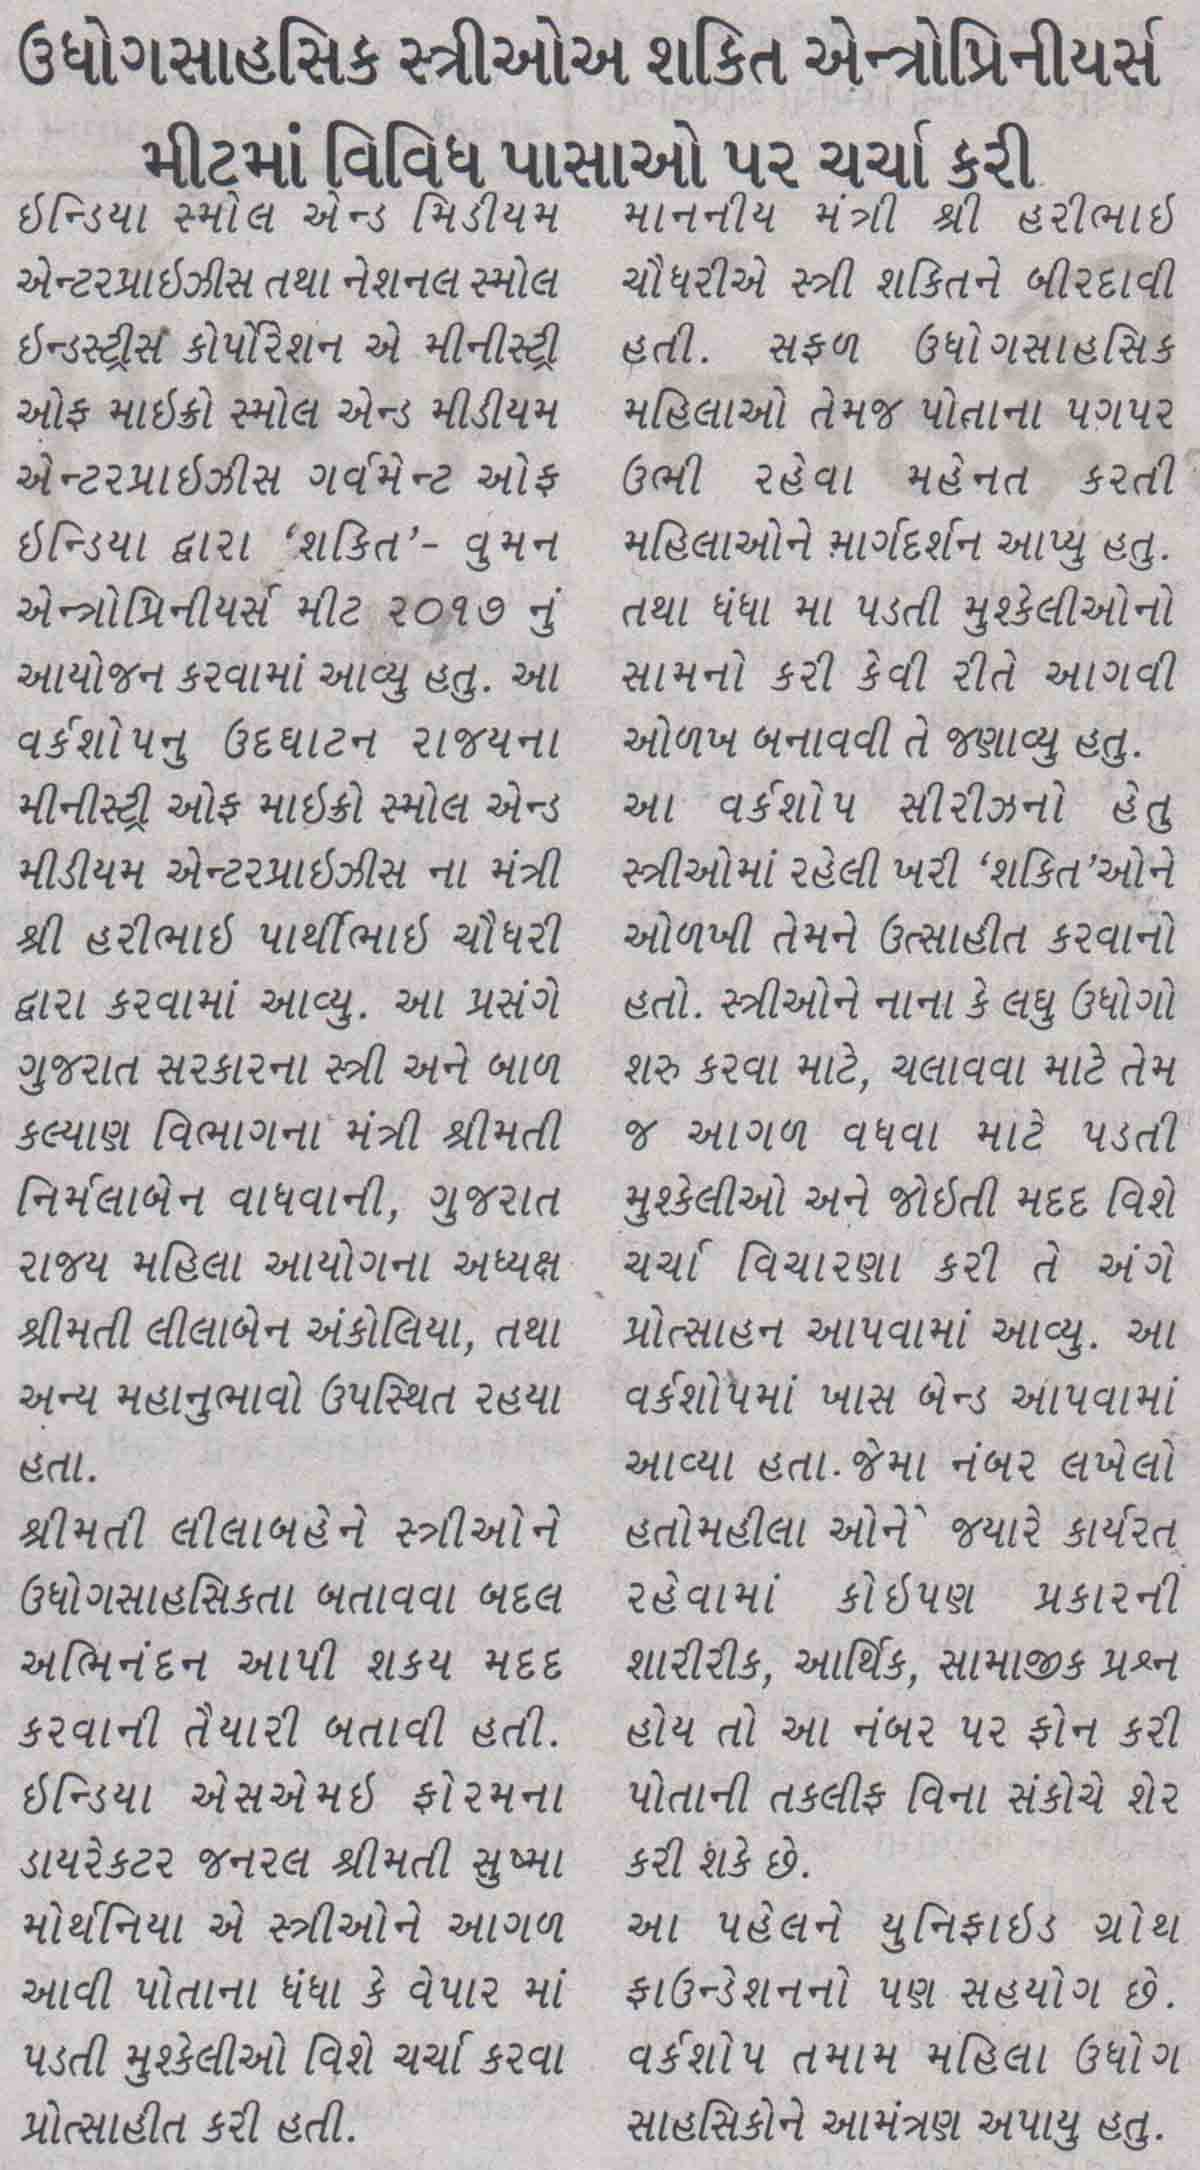 Gujarat Today 20 Aug 17 page 6